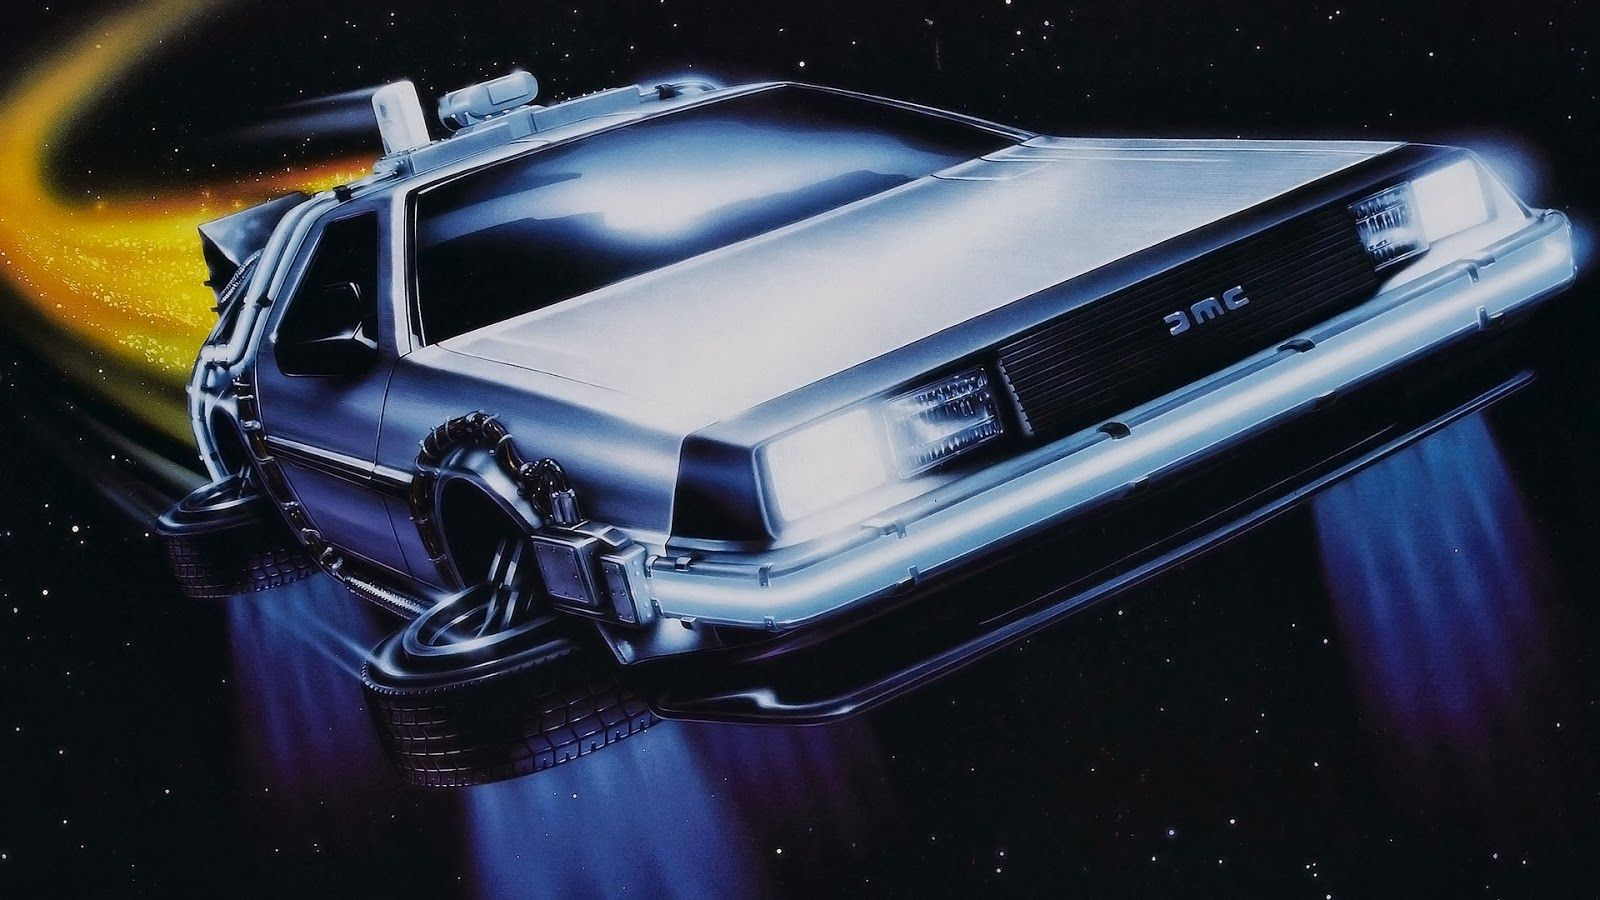 Upcoming Movie Back To The Future Hd Wallpapers For You On Hd